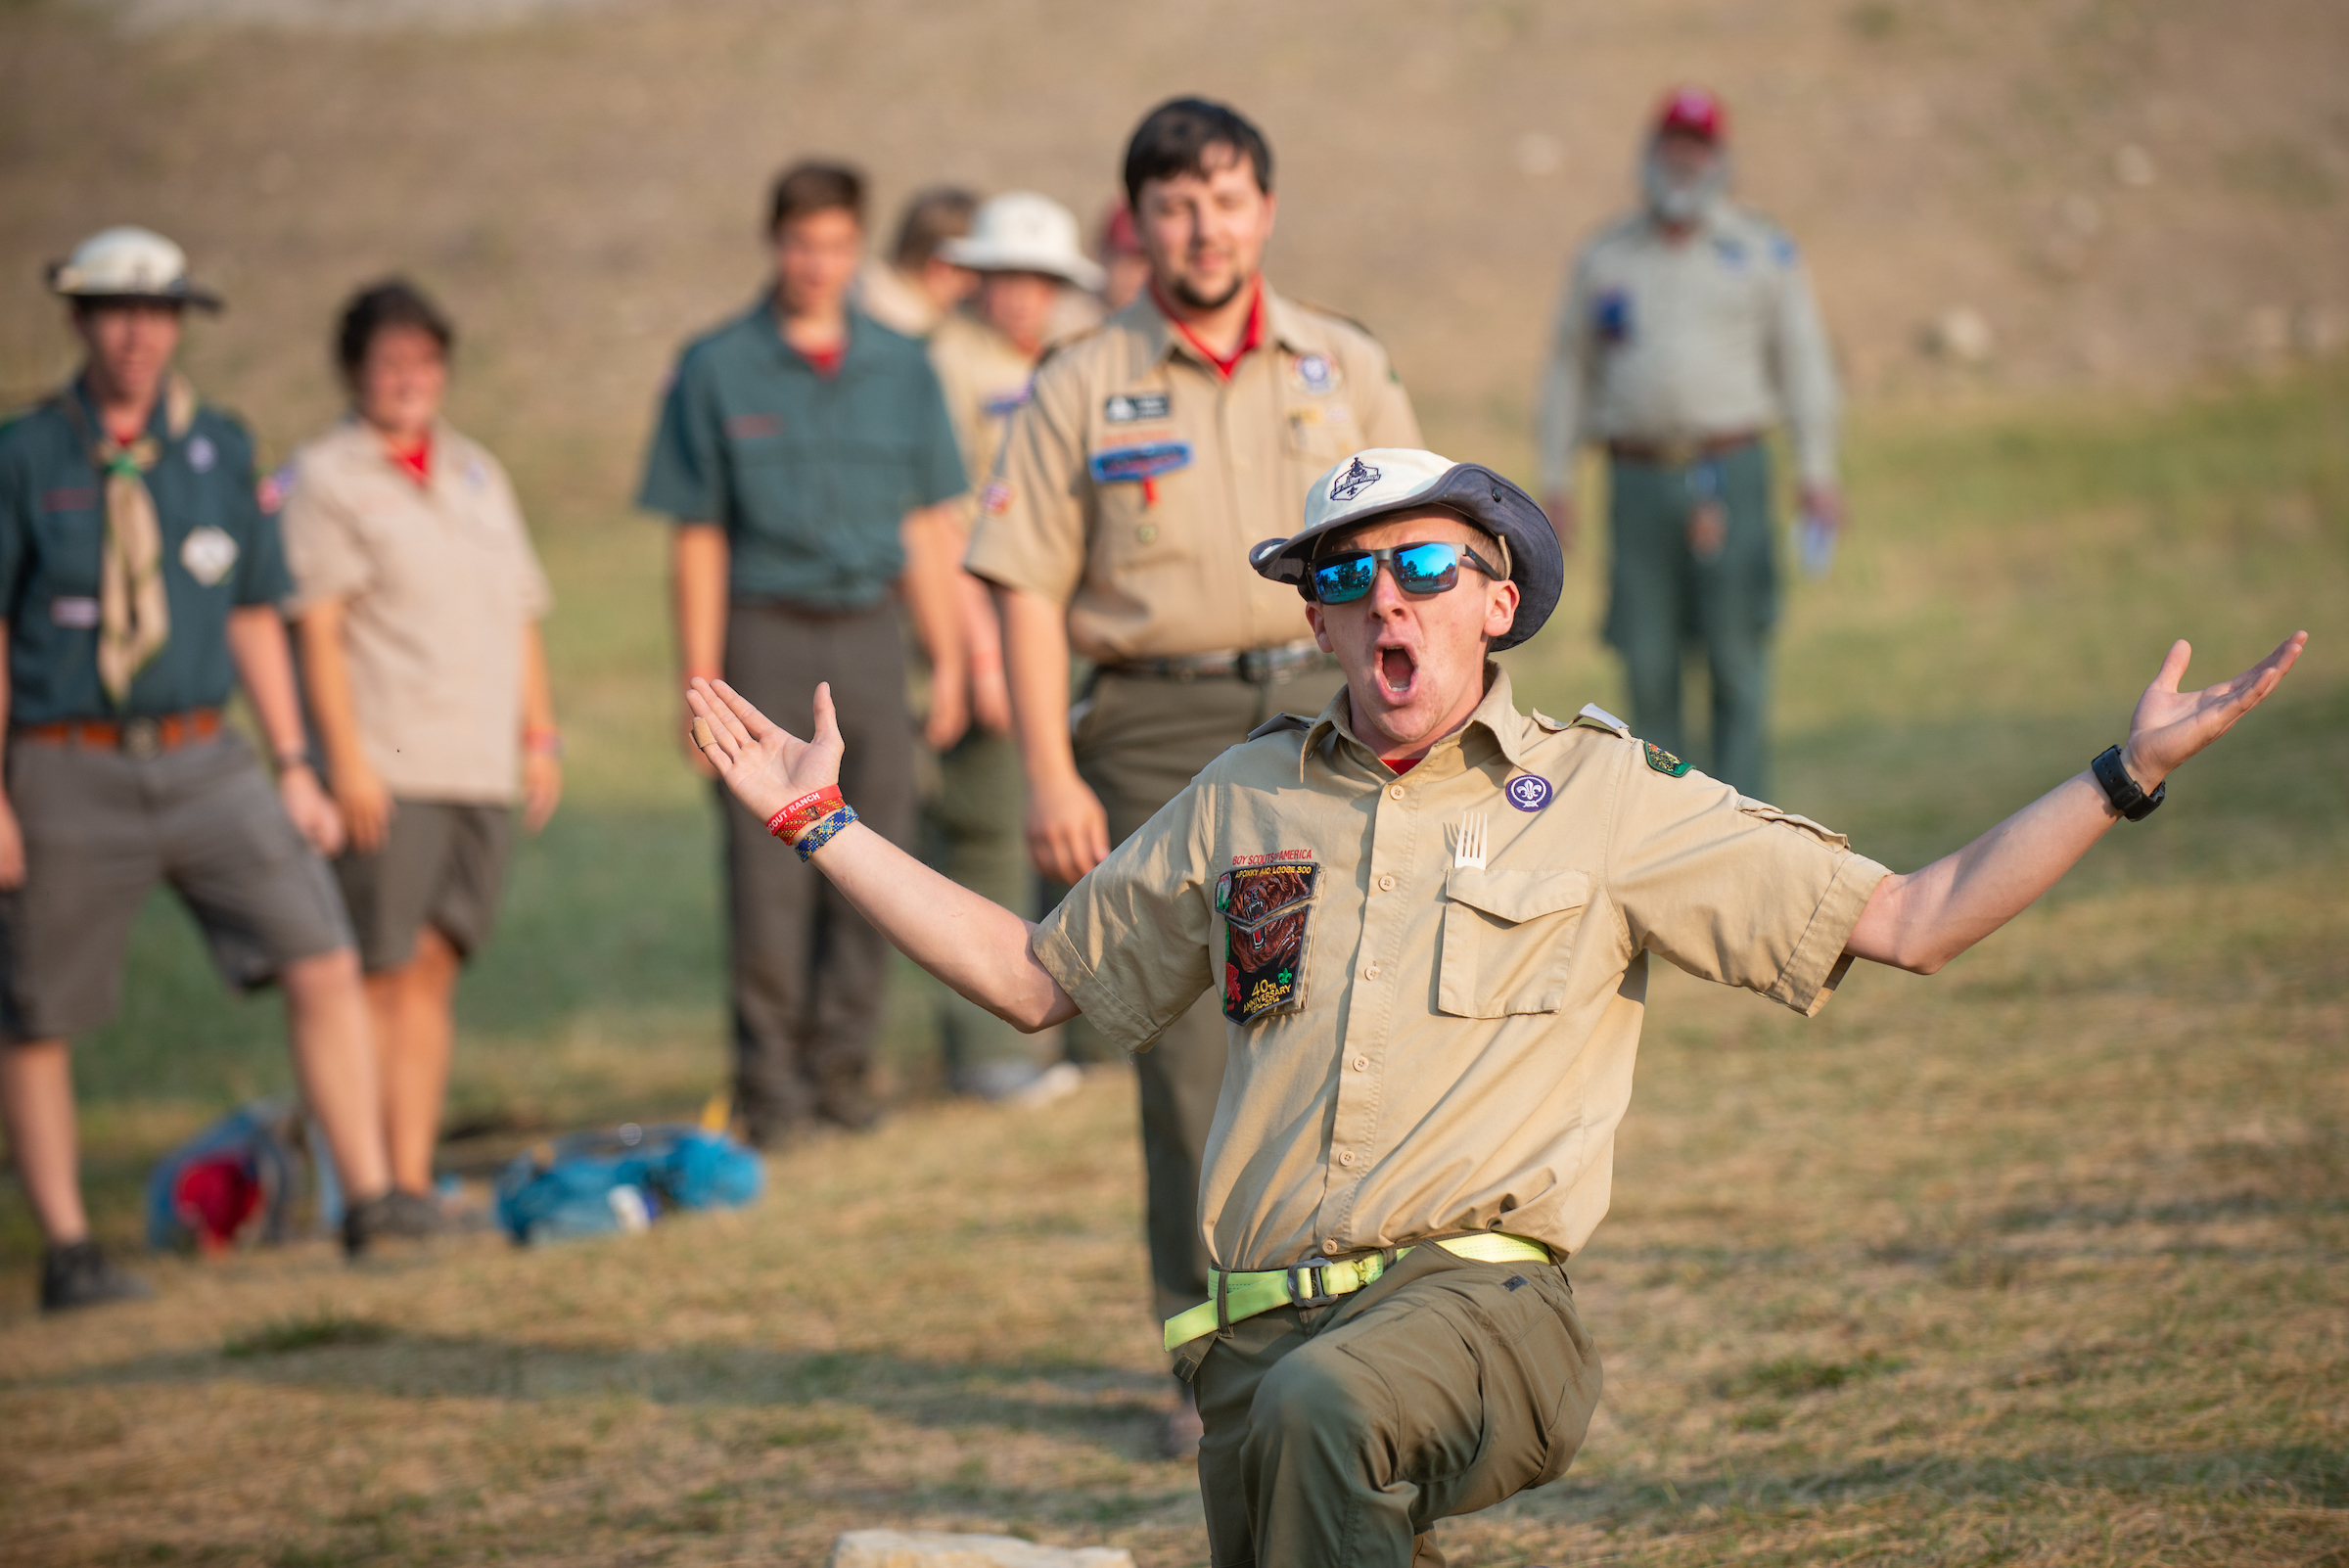 Boy Scouts camp counselor speaks enthusiastically to a group at summer camp